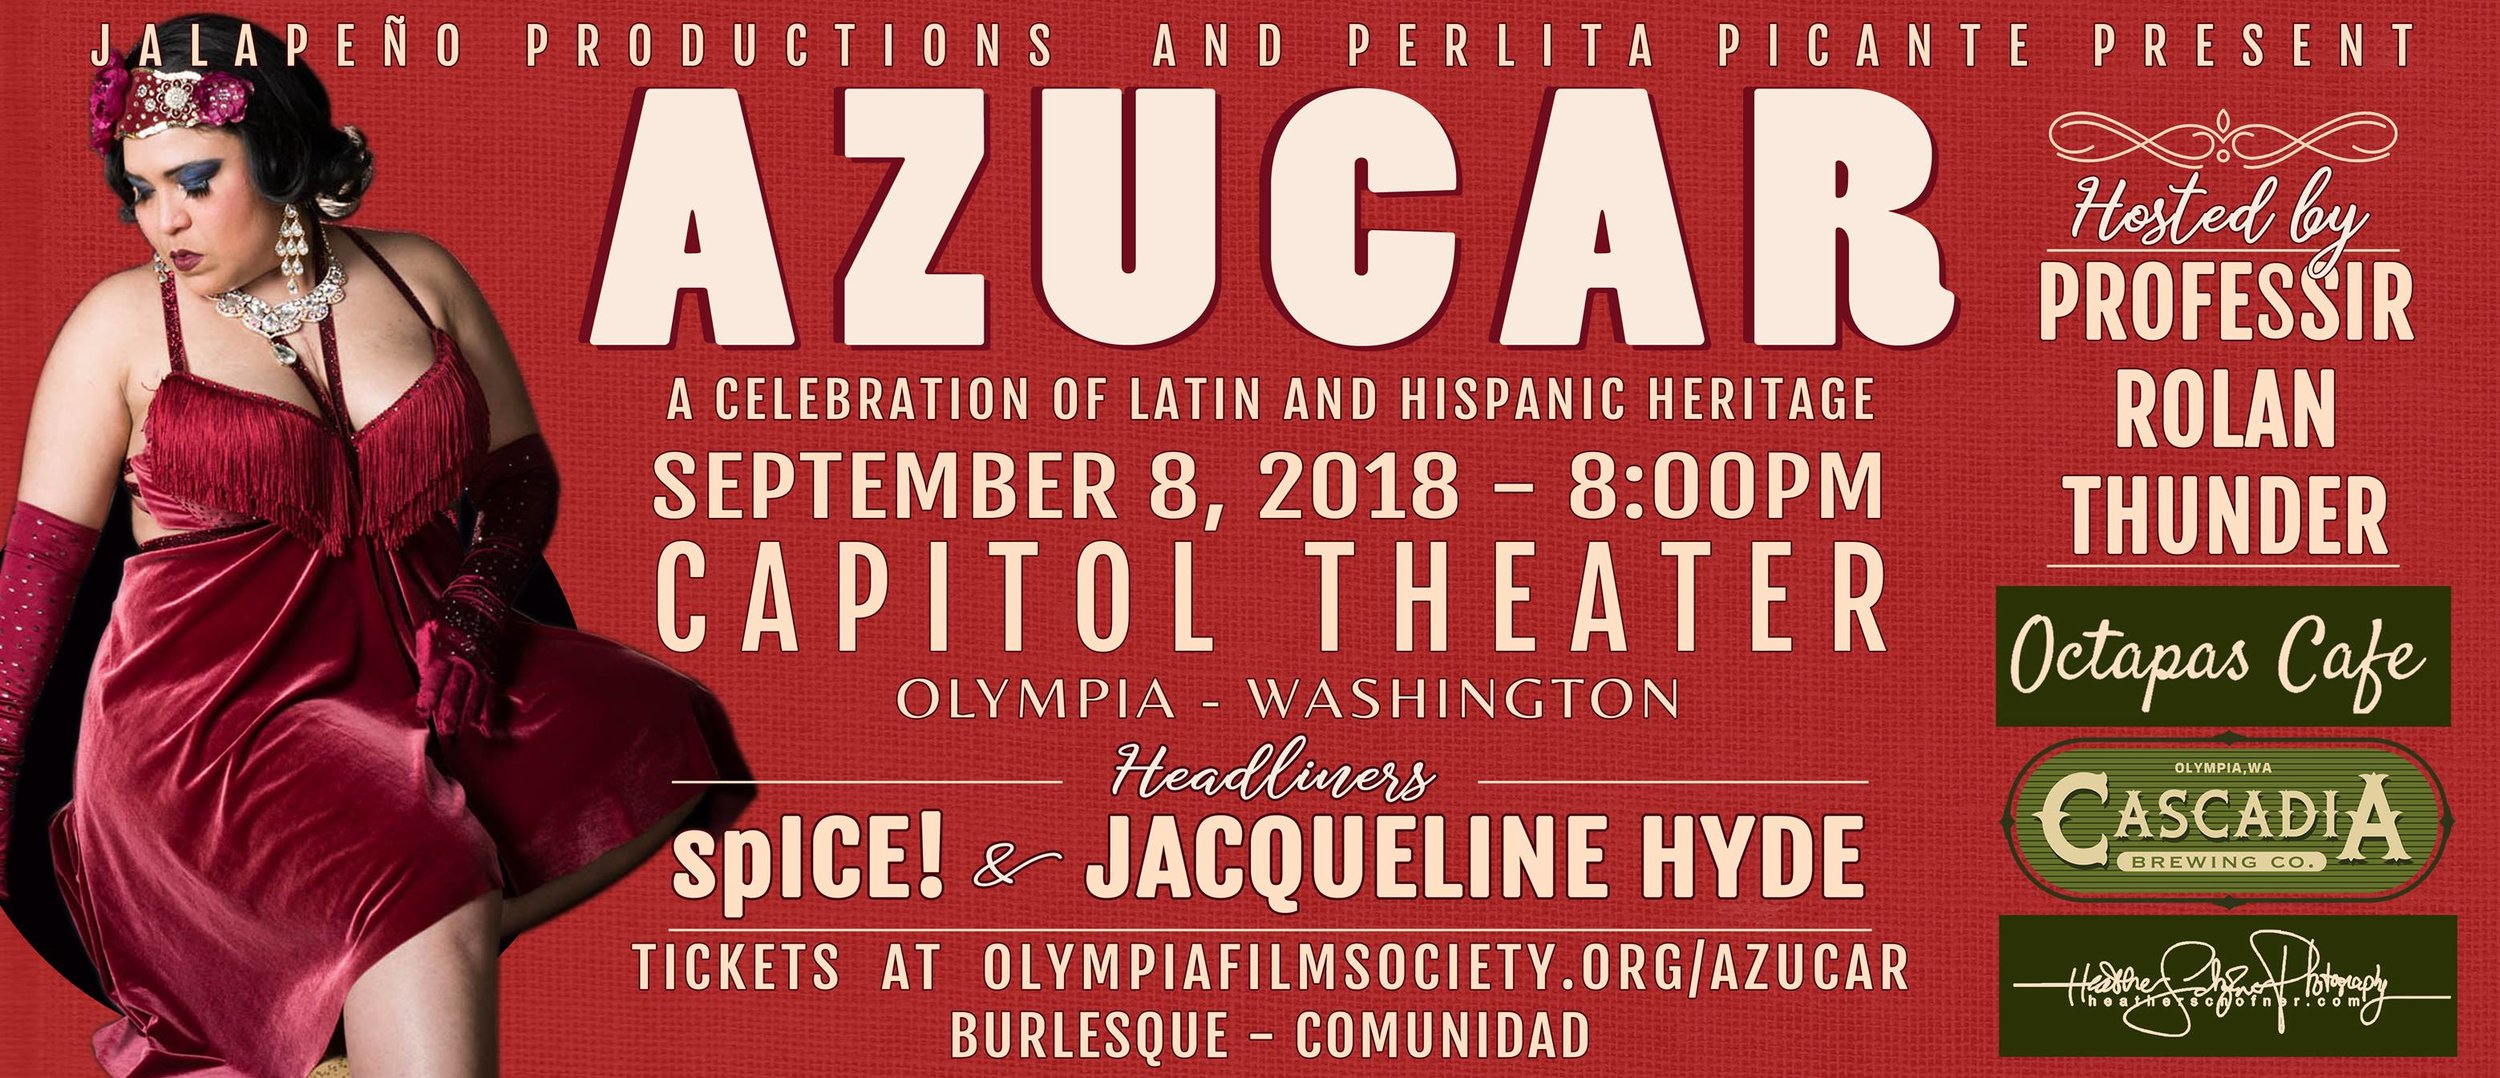 Click the photo to learn more about the event sponsoring this episode, Azucar: A Celebration of Latin And Hispanic Heritage